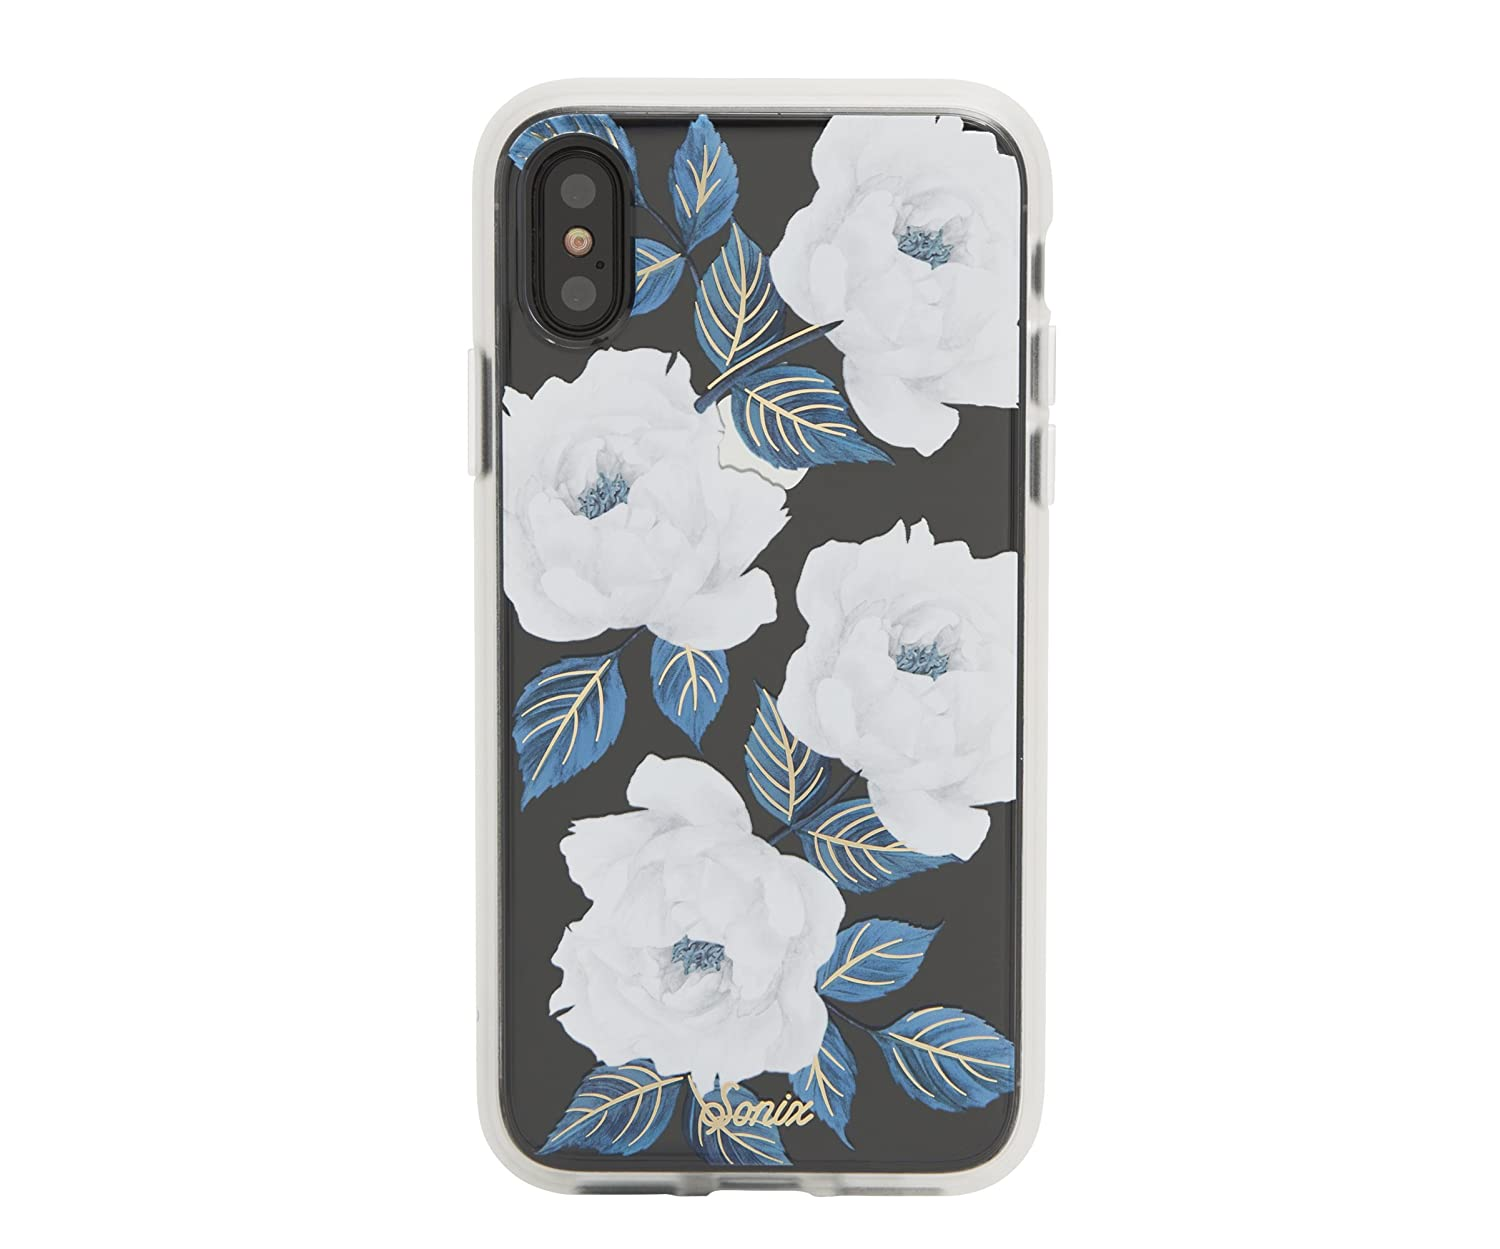 9ba6944bb29d9 iPhone Xs, iPhone X, Sapphire Bloom Cell Phone Case [Military Drop Test  Certified] Women's Protective Clear Case for Apple iPhone X, iPhone Xs